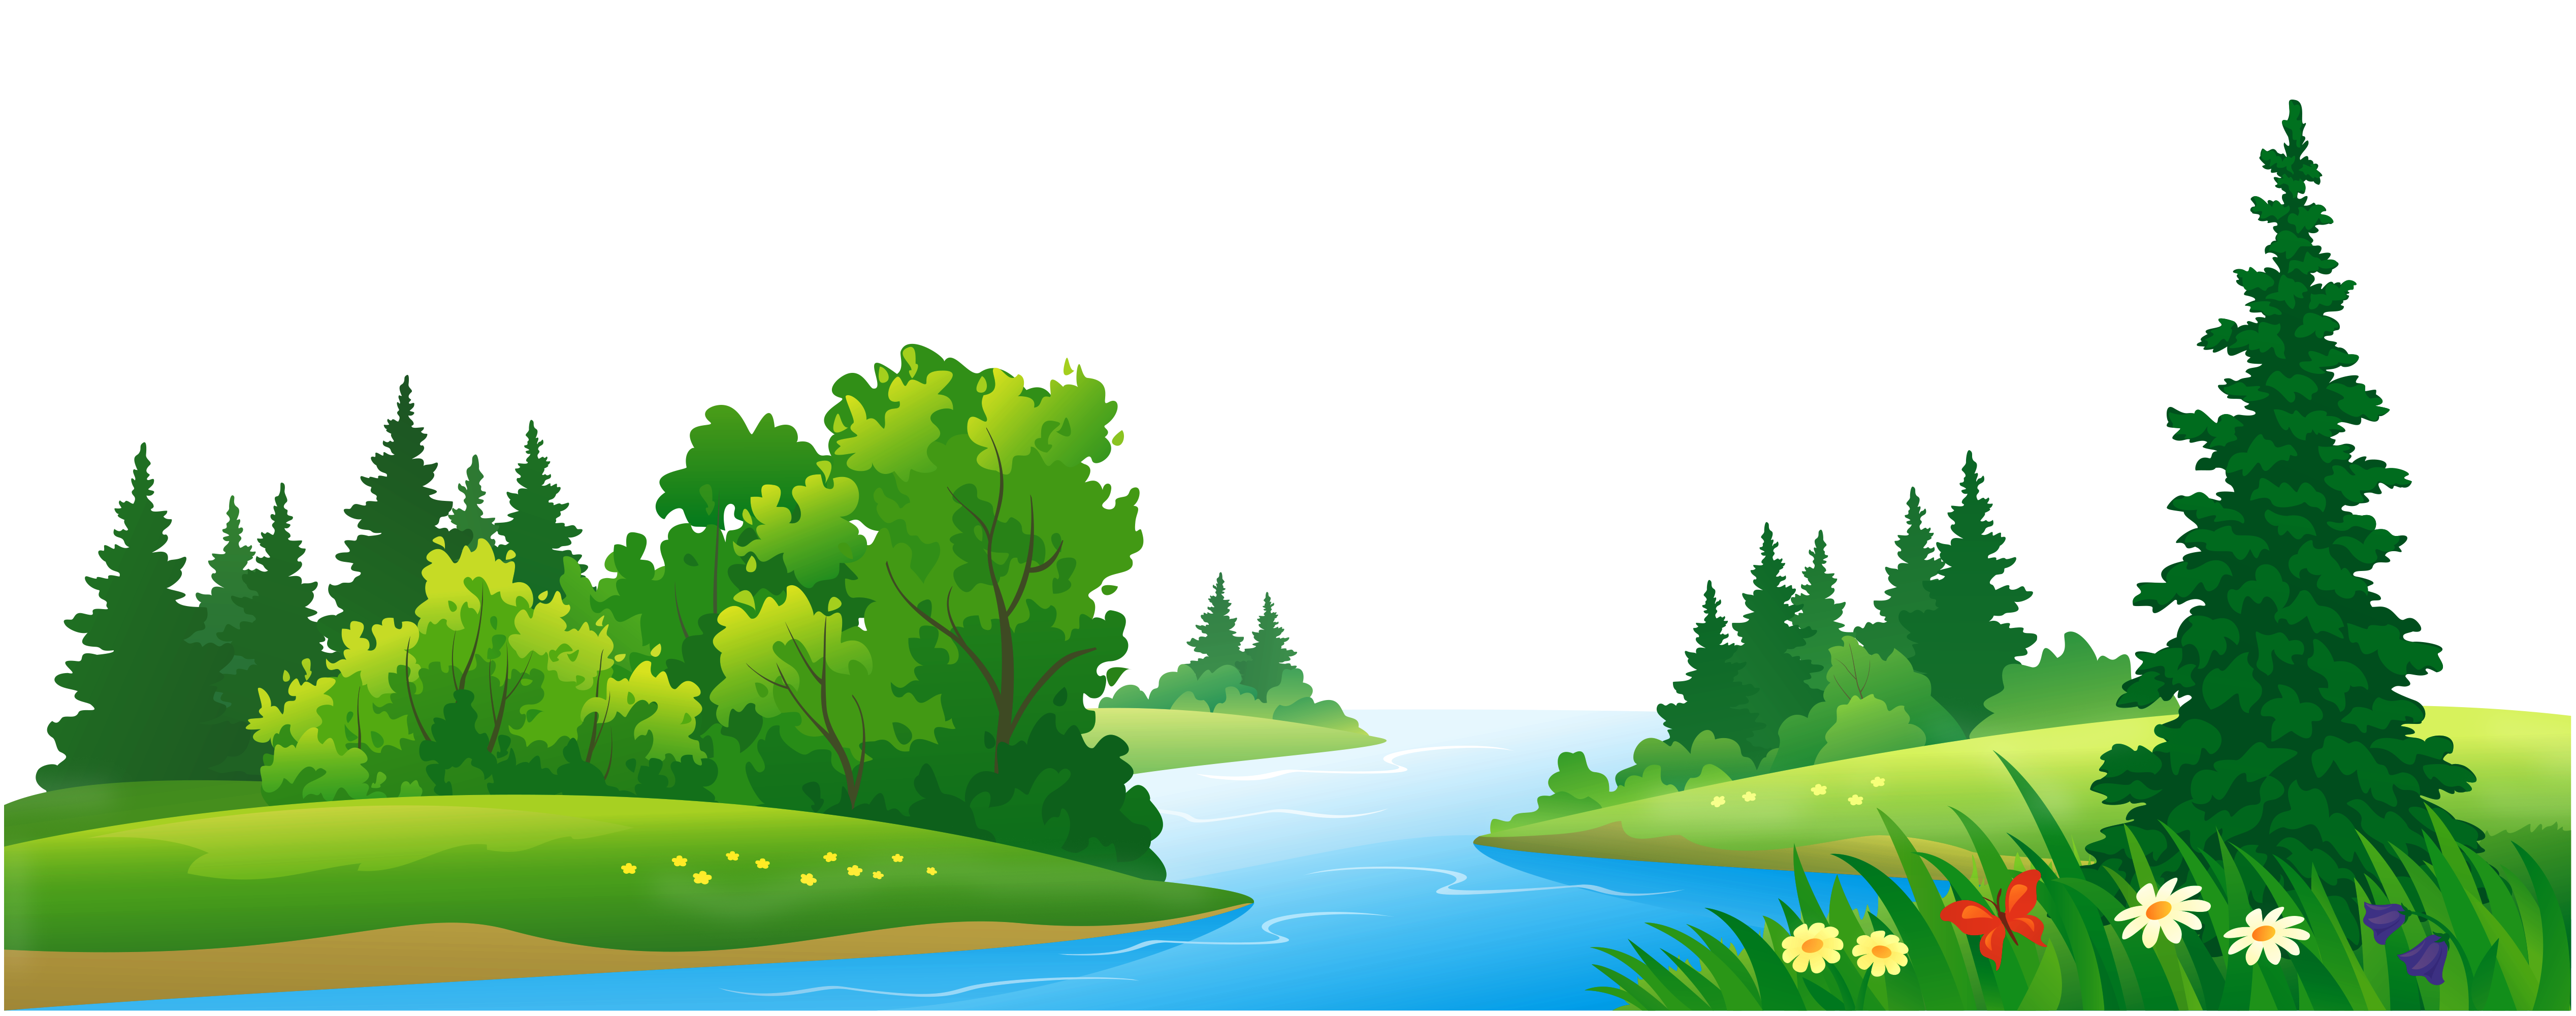 Cartoon lake clipart jpg royalty free stock Grass Lake and Trees Transparent PNG Clipart | Gallery Yopriceville ... jpg royalty free stock